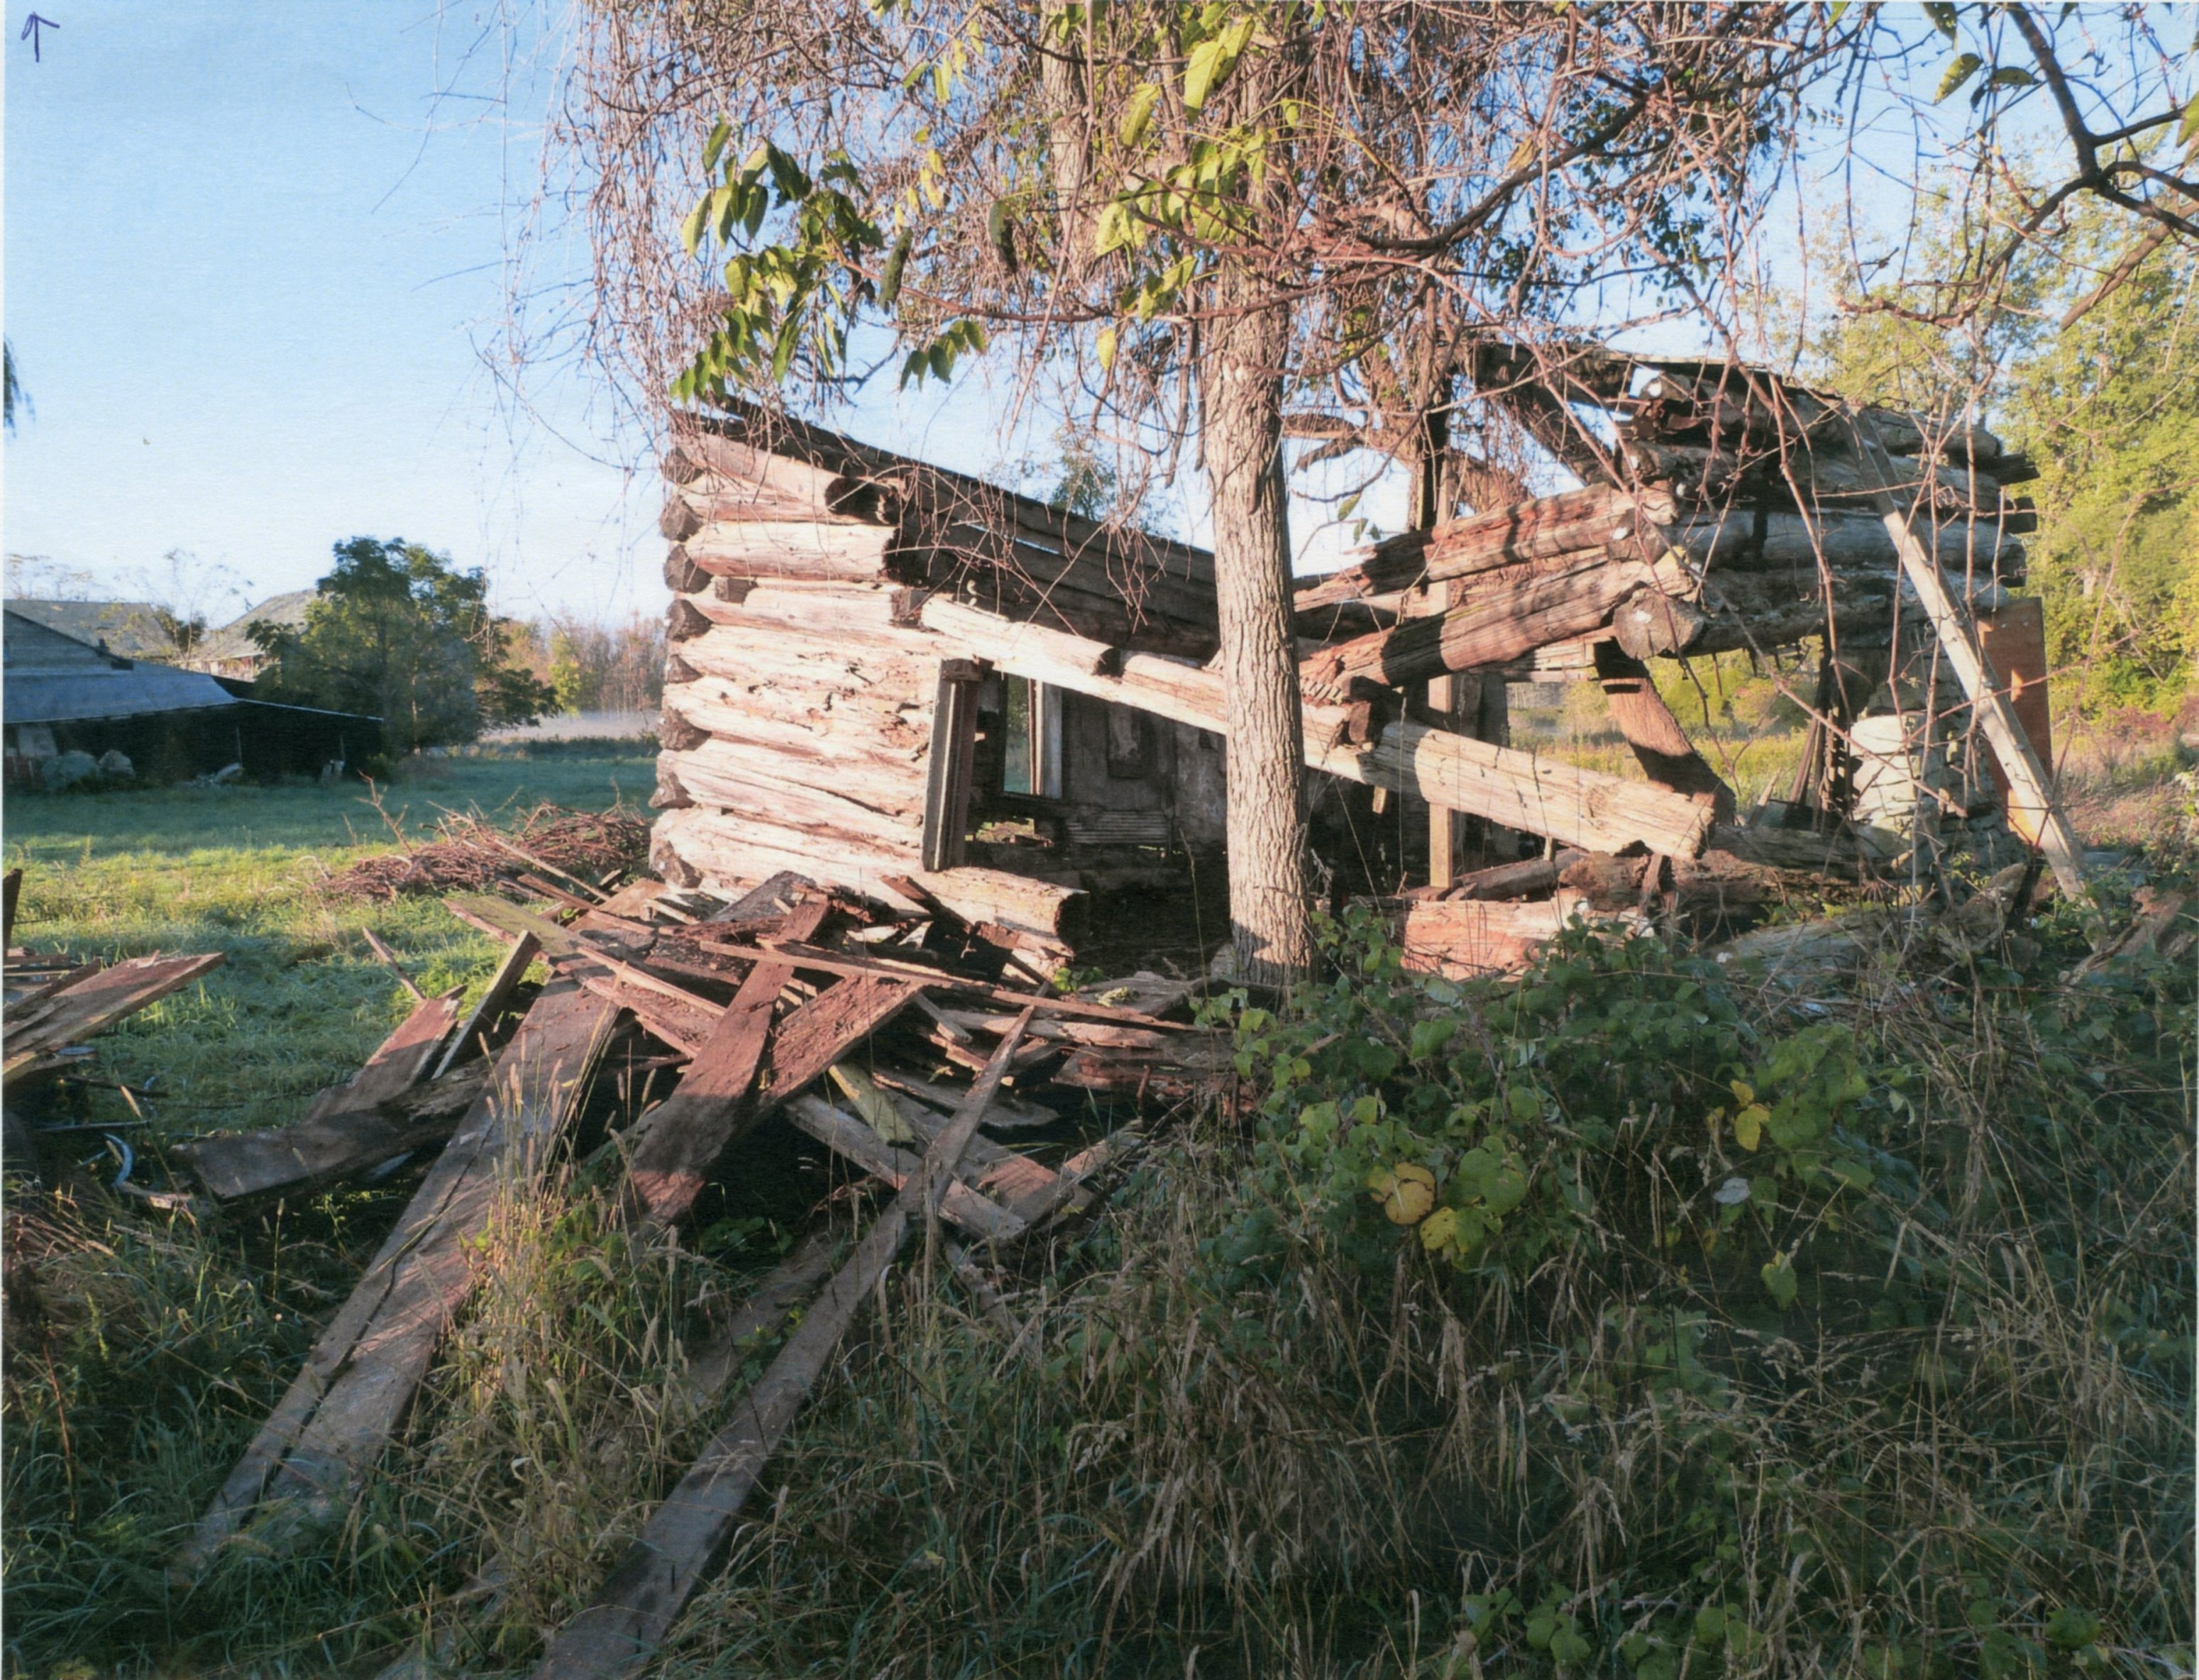 The remains of the Gipple cabin in Lancaster.